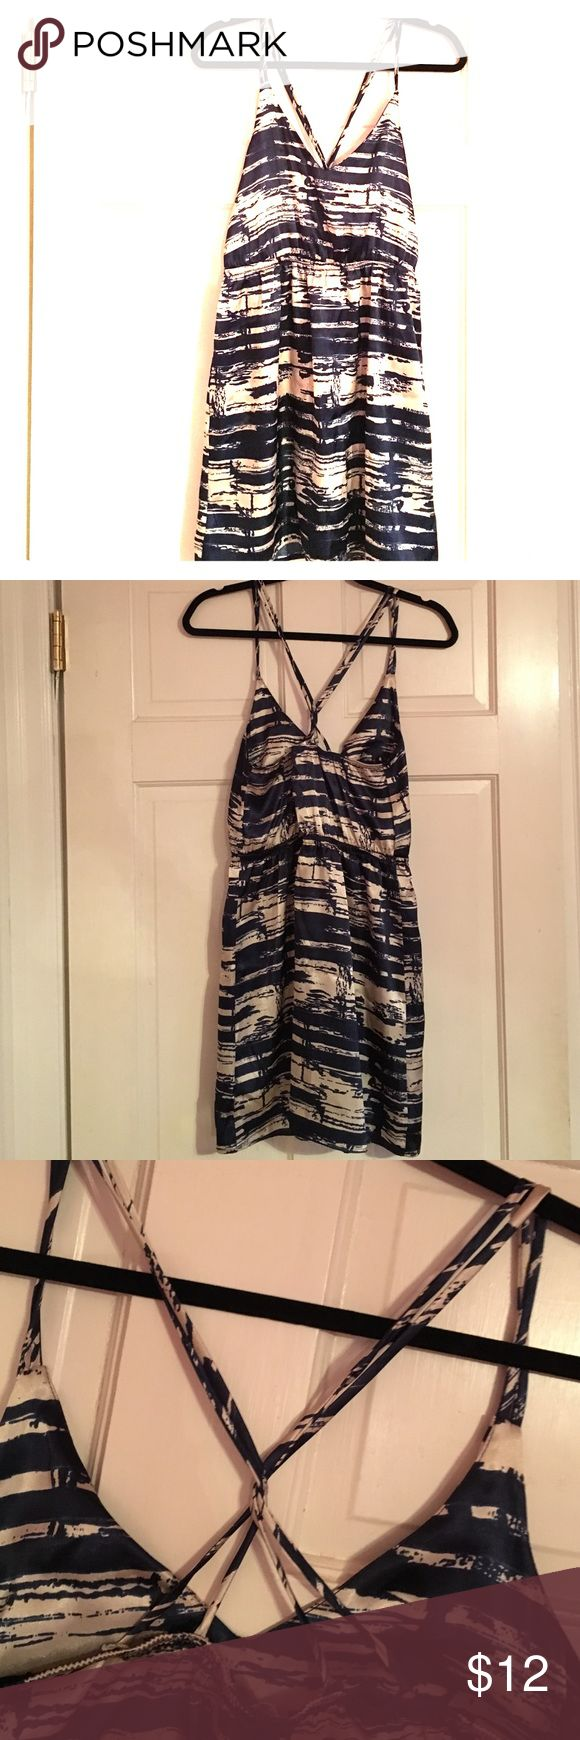 Silk sundress Navy blue and white silk sundress with criss-cross back. Great for a casual night out or comfortable day attire. Dress down with flats or dress up with some jewelry and a pair of heels! Dresses Mini